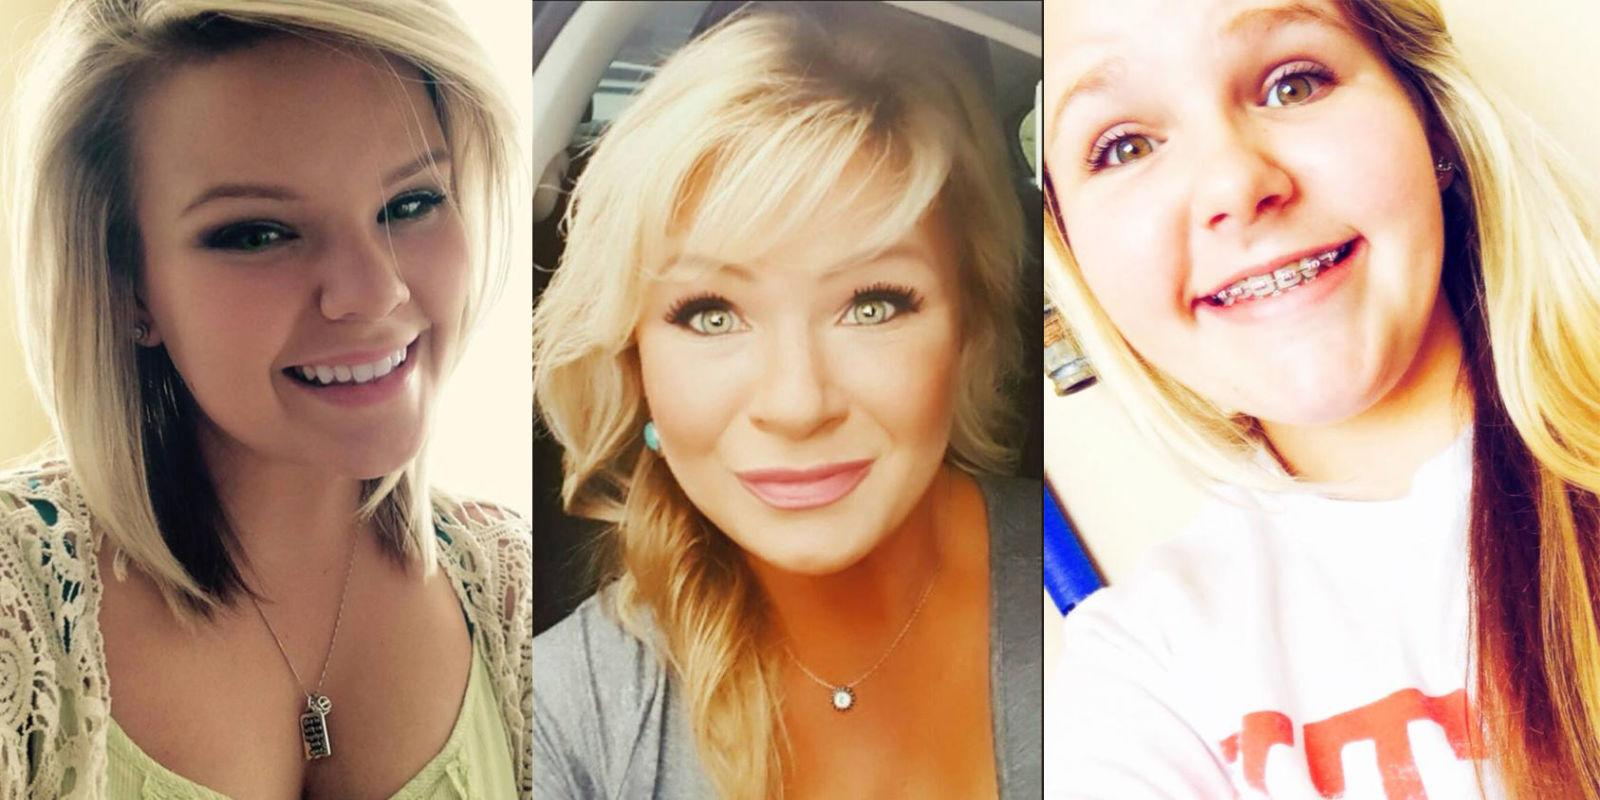 Police Reveal Harrowing New Details About the Home Life of the Texas Mom Who Killed Her Daughters